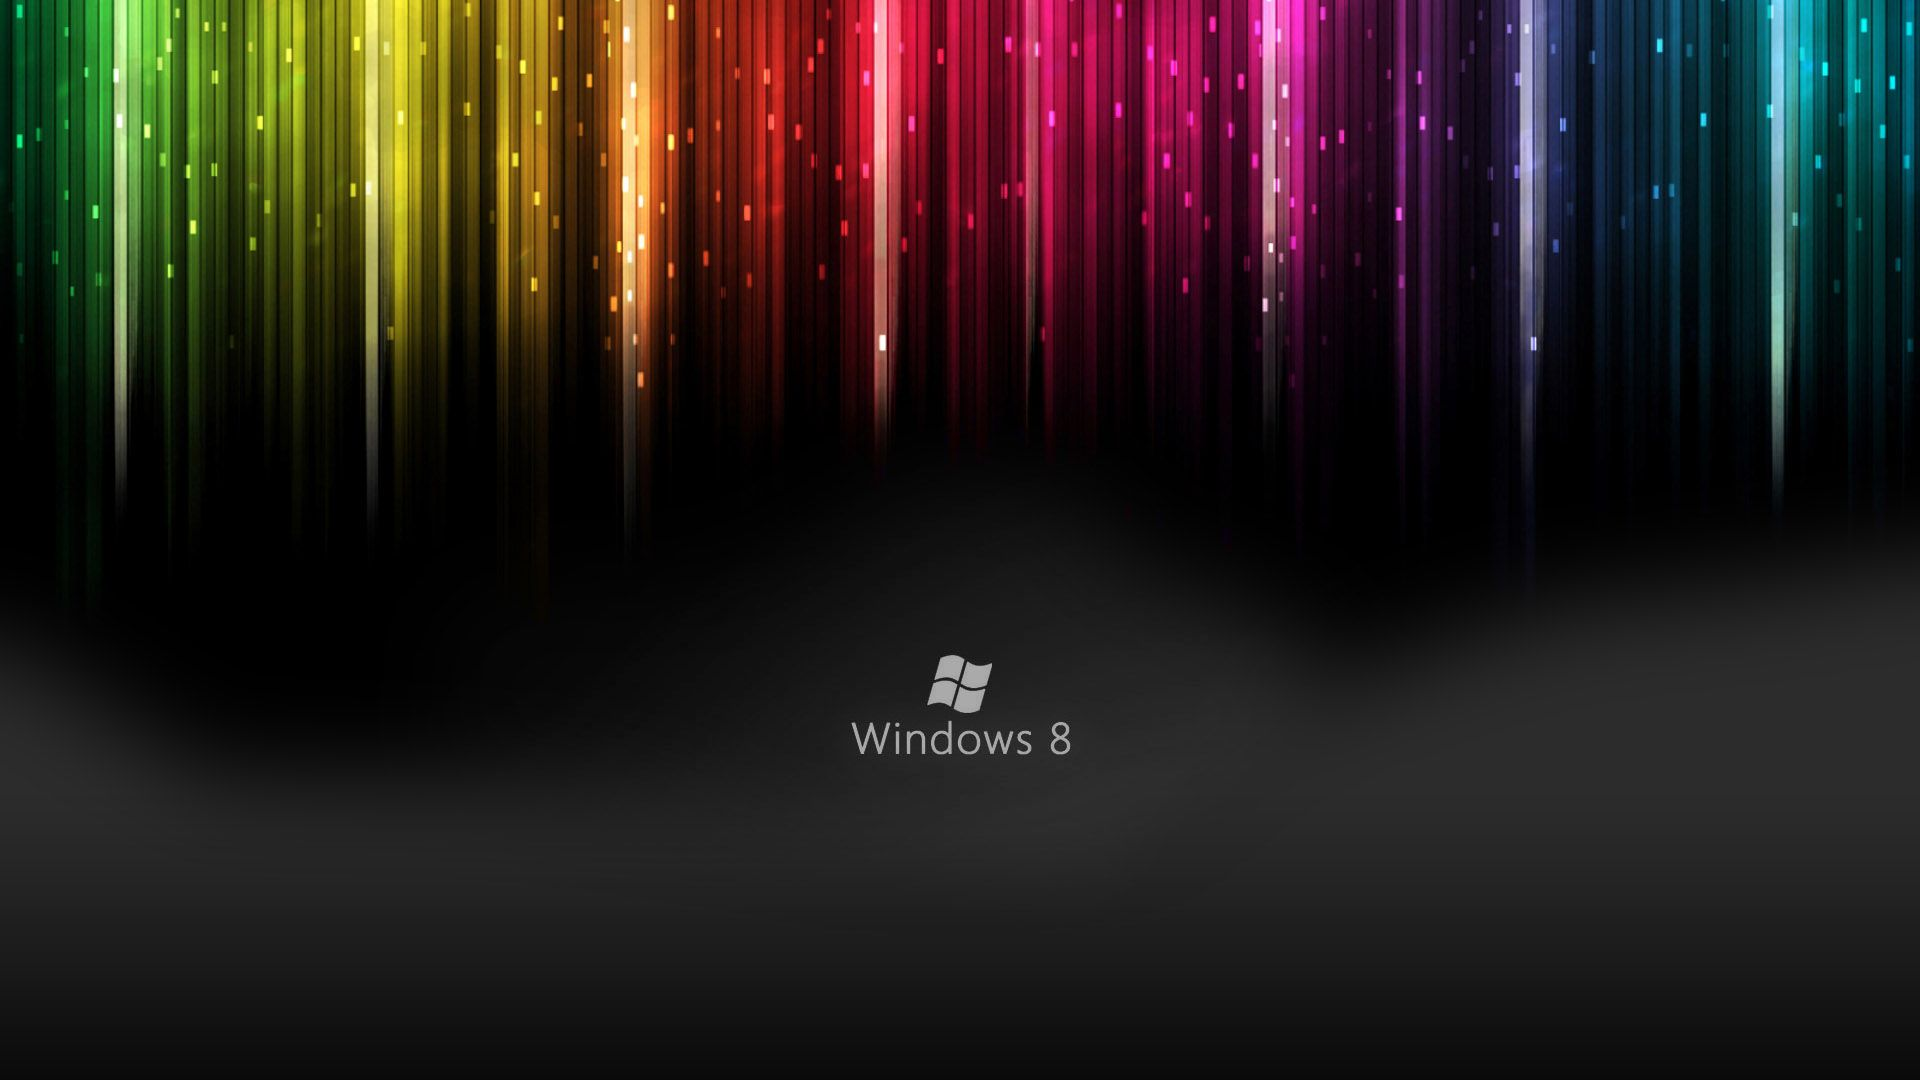 Windows 8 Live Wallpapers Hd 1080p